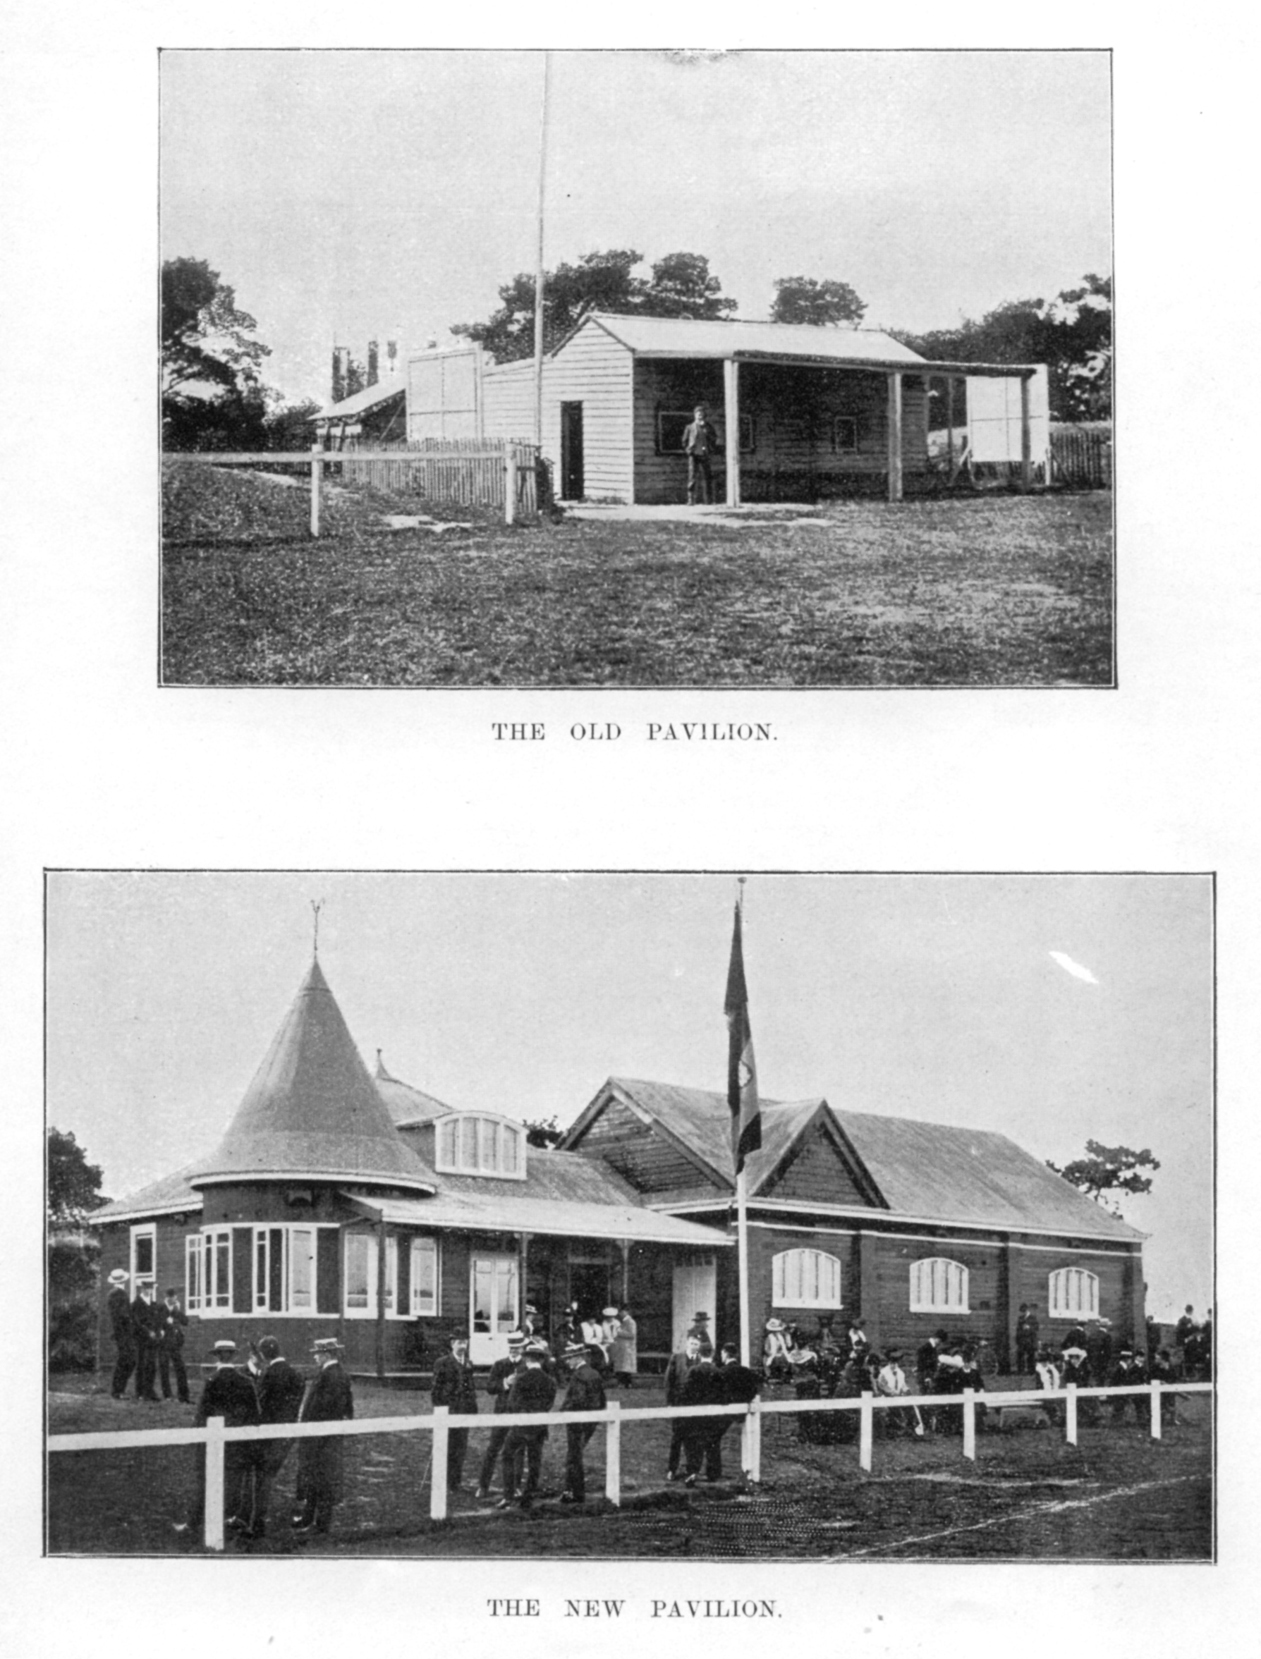 Old pavilion and new pavilion